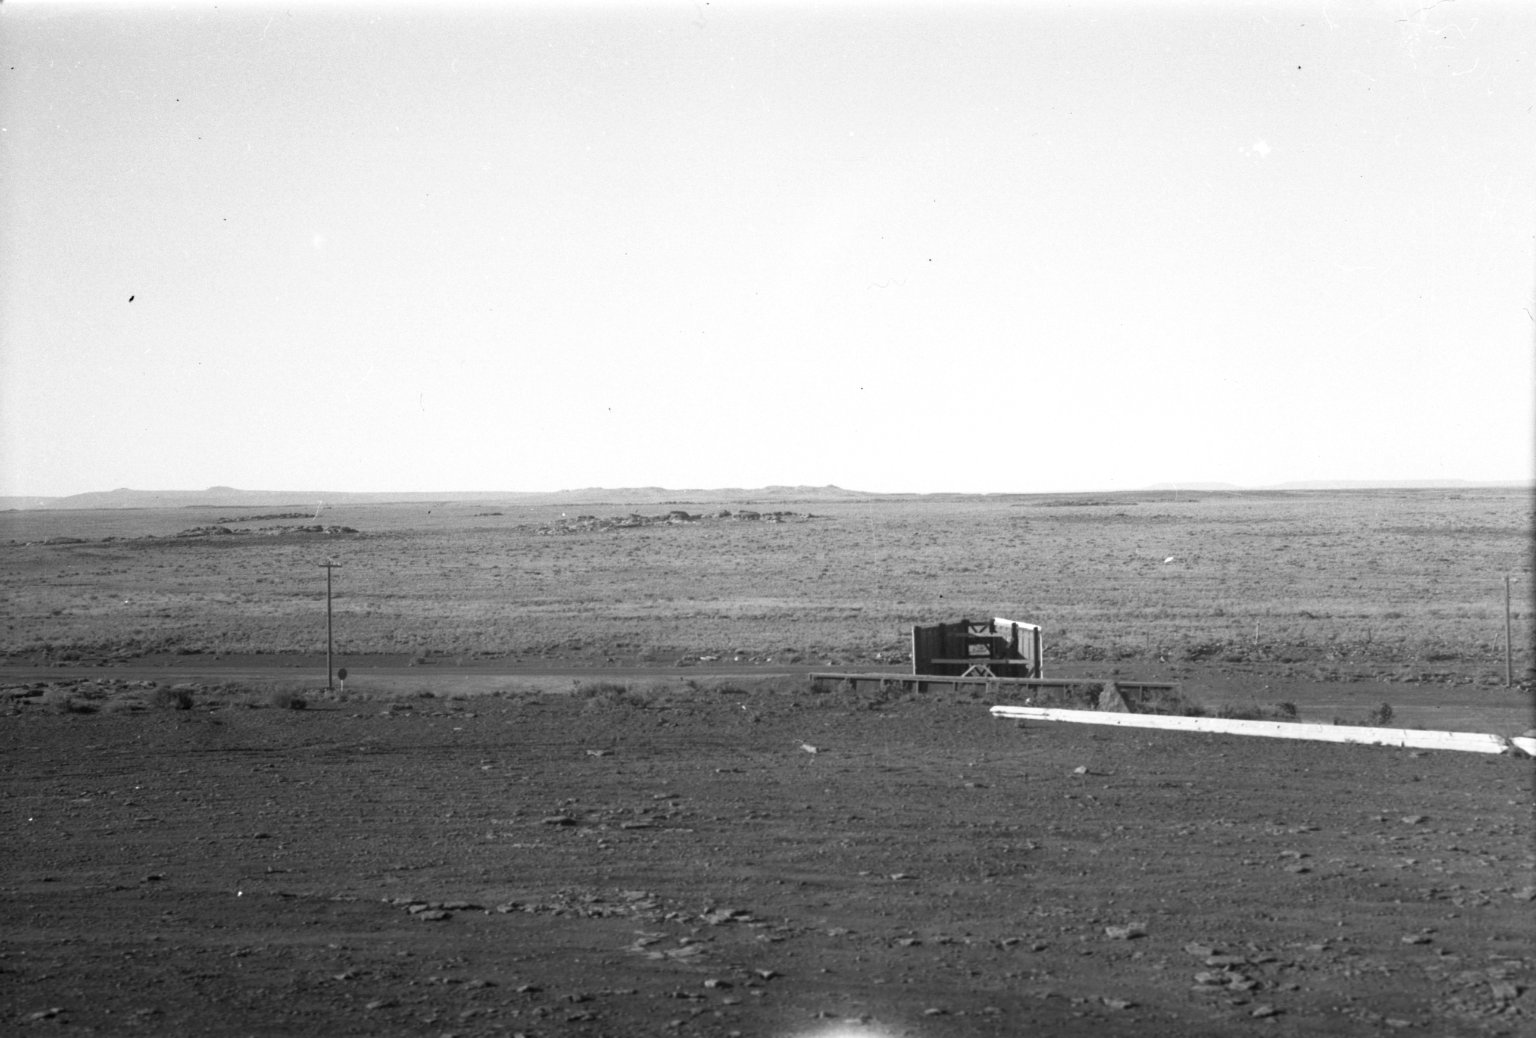 Crater on horizon